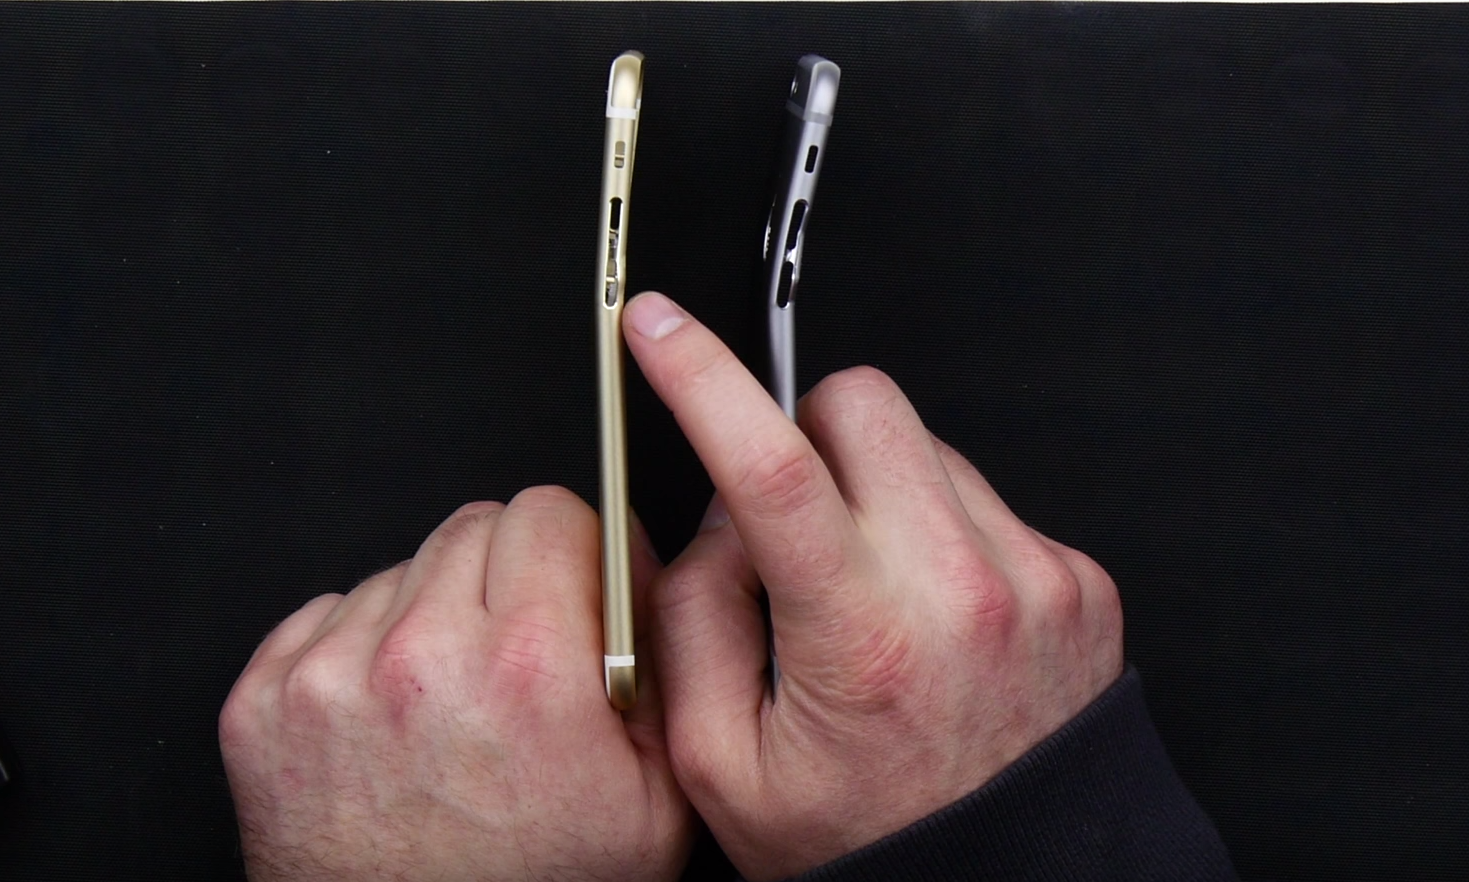 iphone 6 vs iphone 6s bend test compare 600